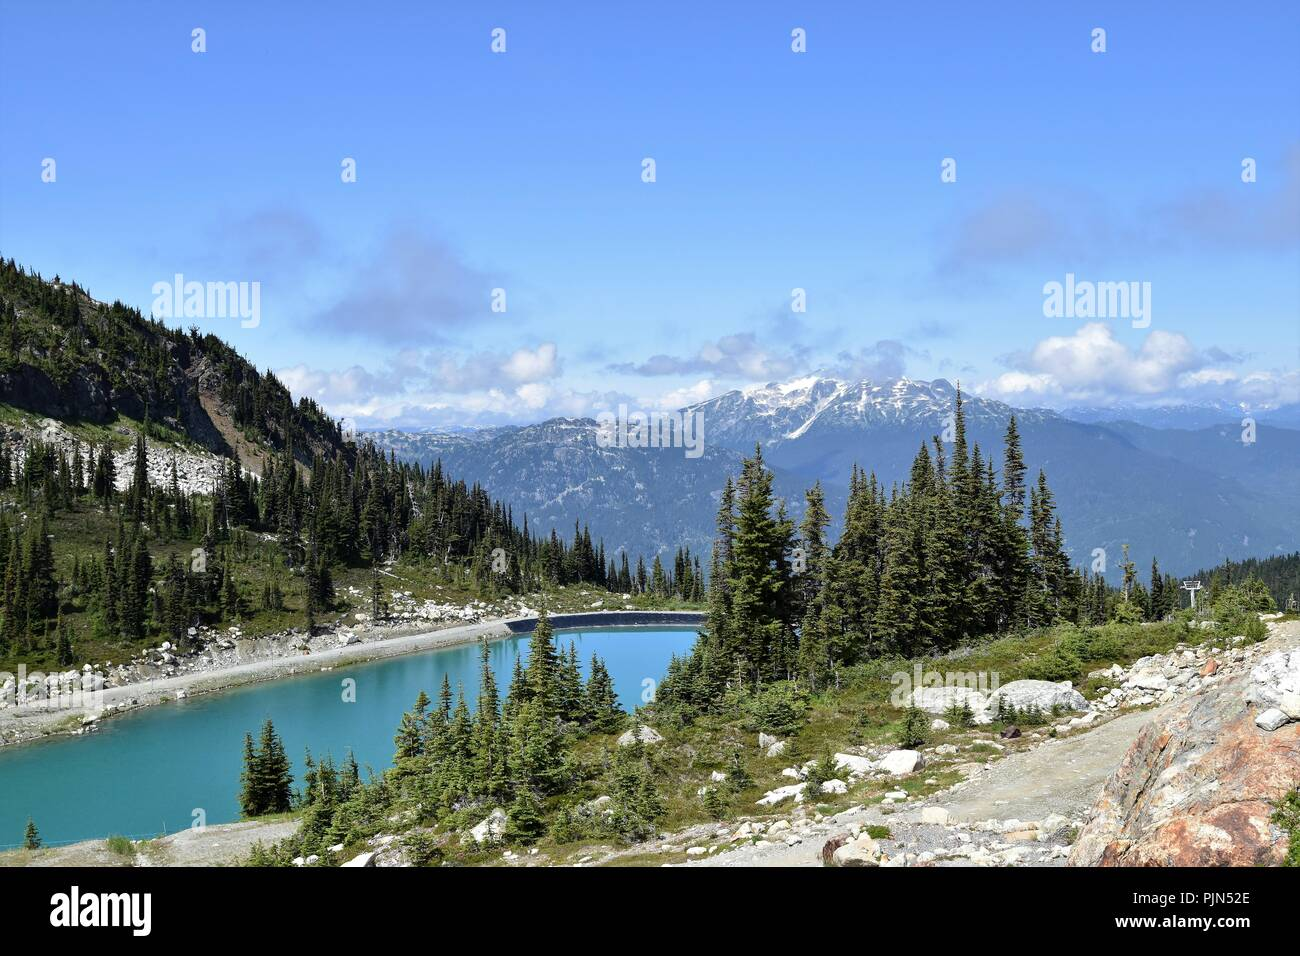 Above the clouds, in Whistler mountains, British Columbia, Canada. - Stock Image